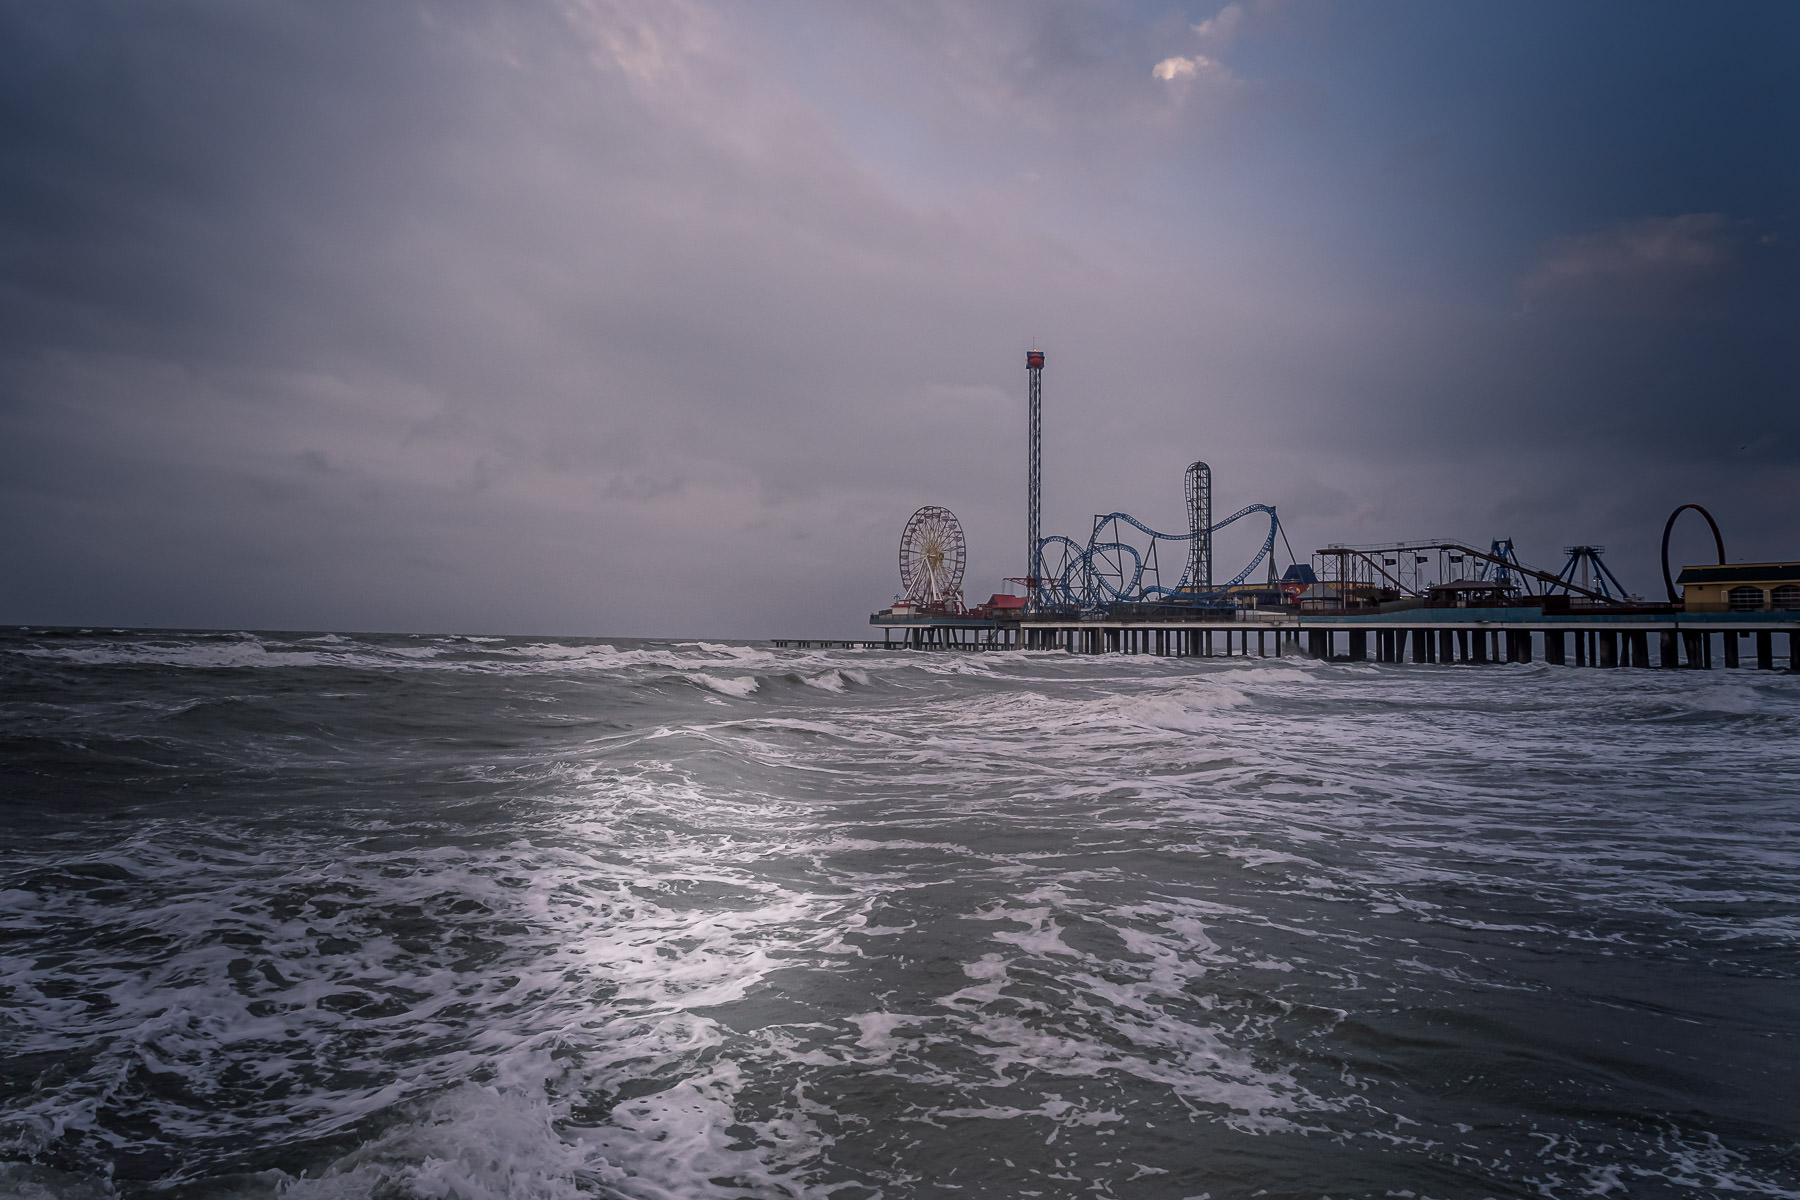 Galveston, Texas' Historic Pleasure Pier on dreary, overcast day.